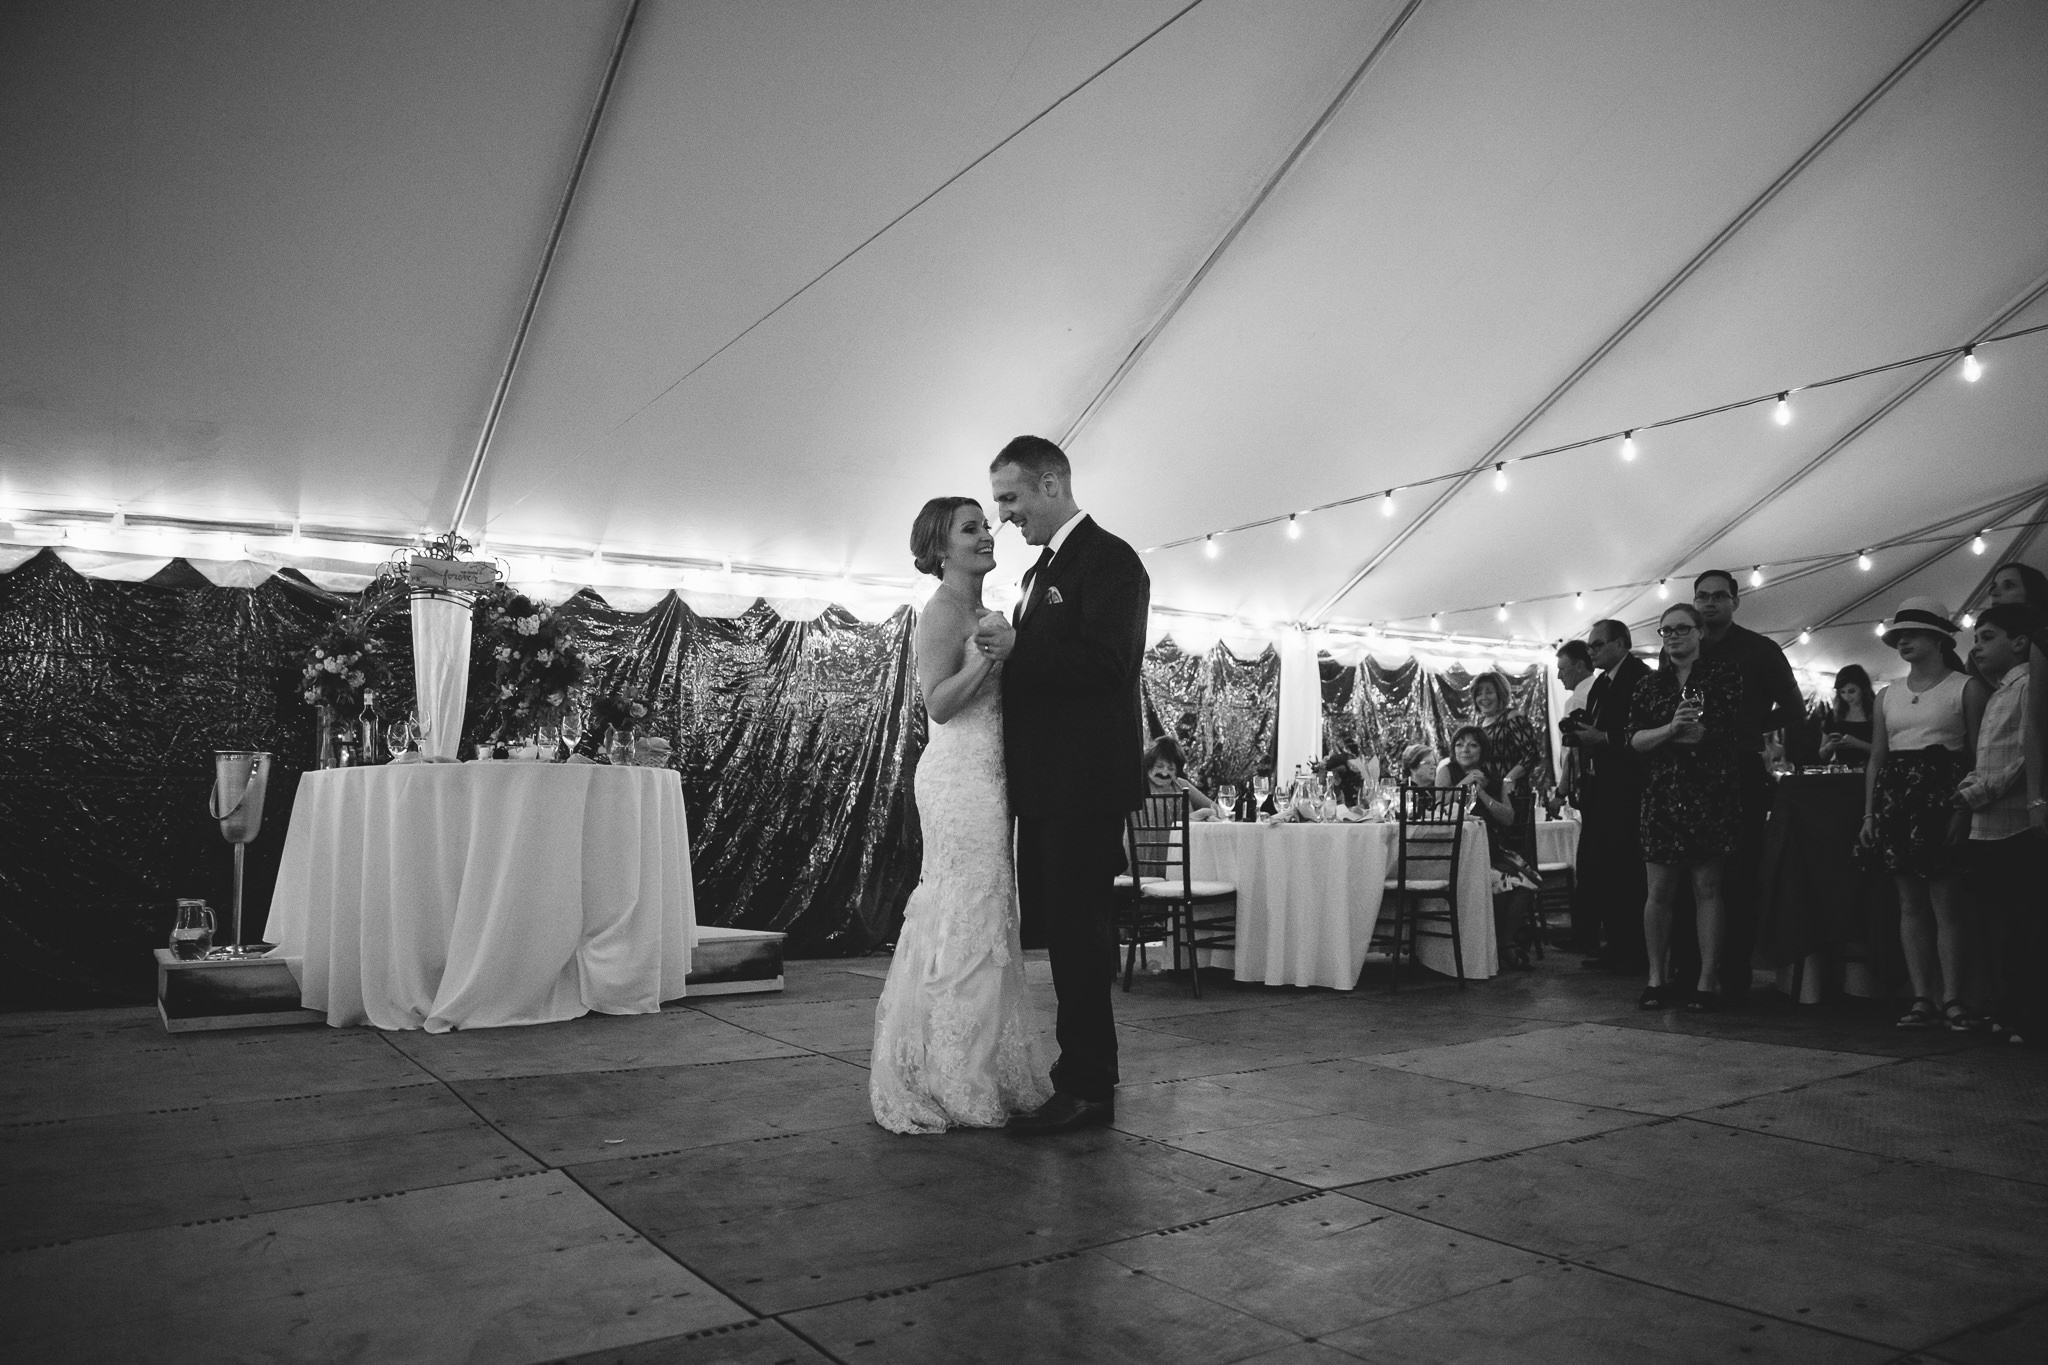 bride and groom first dance under tent in their backyard